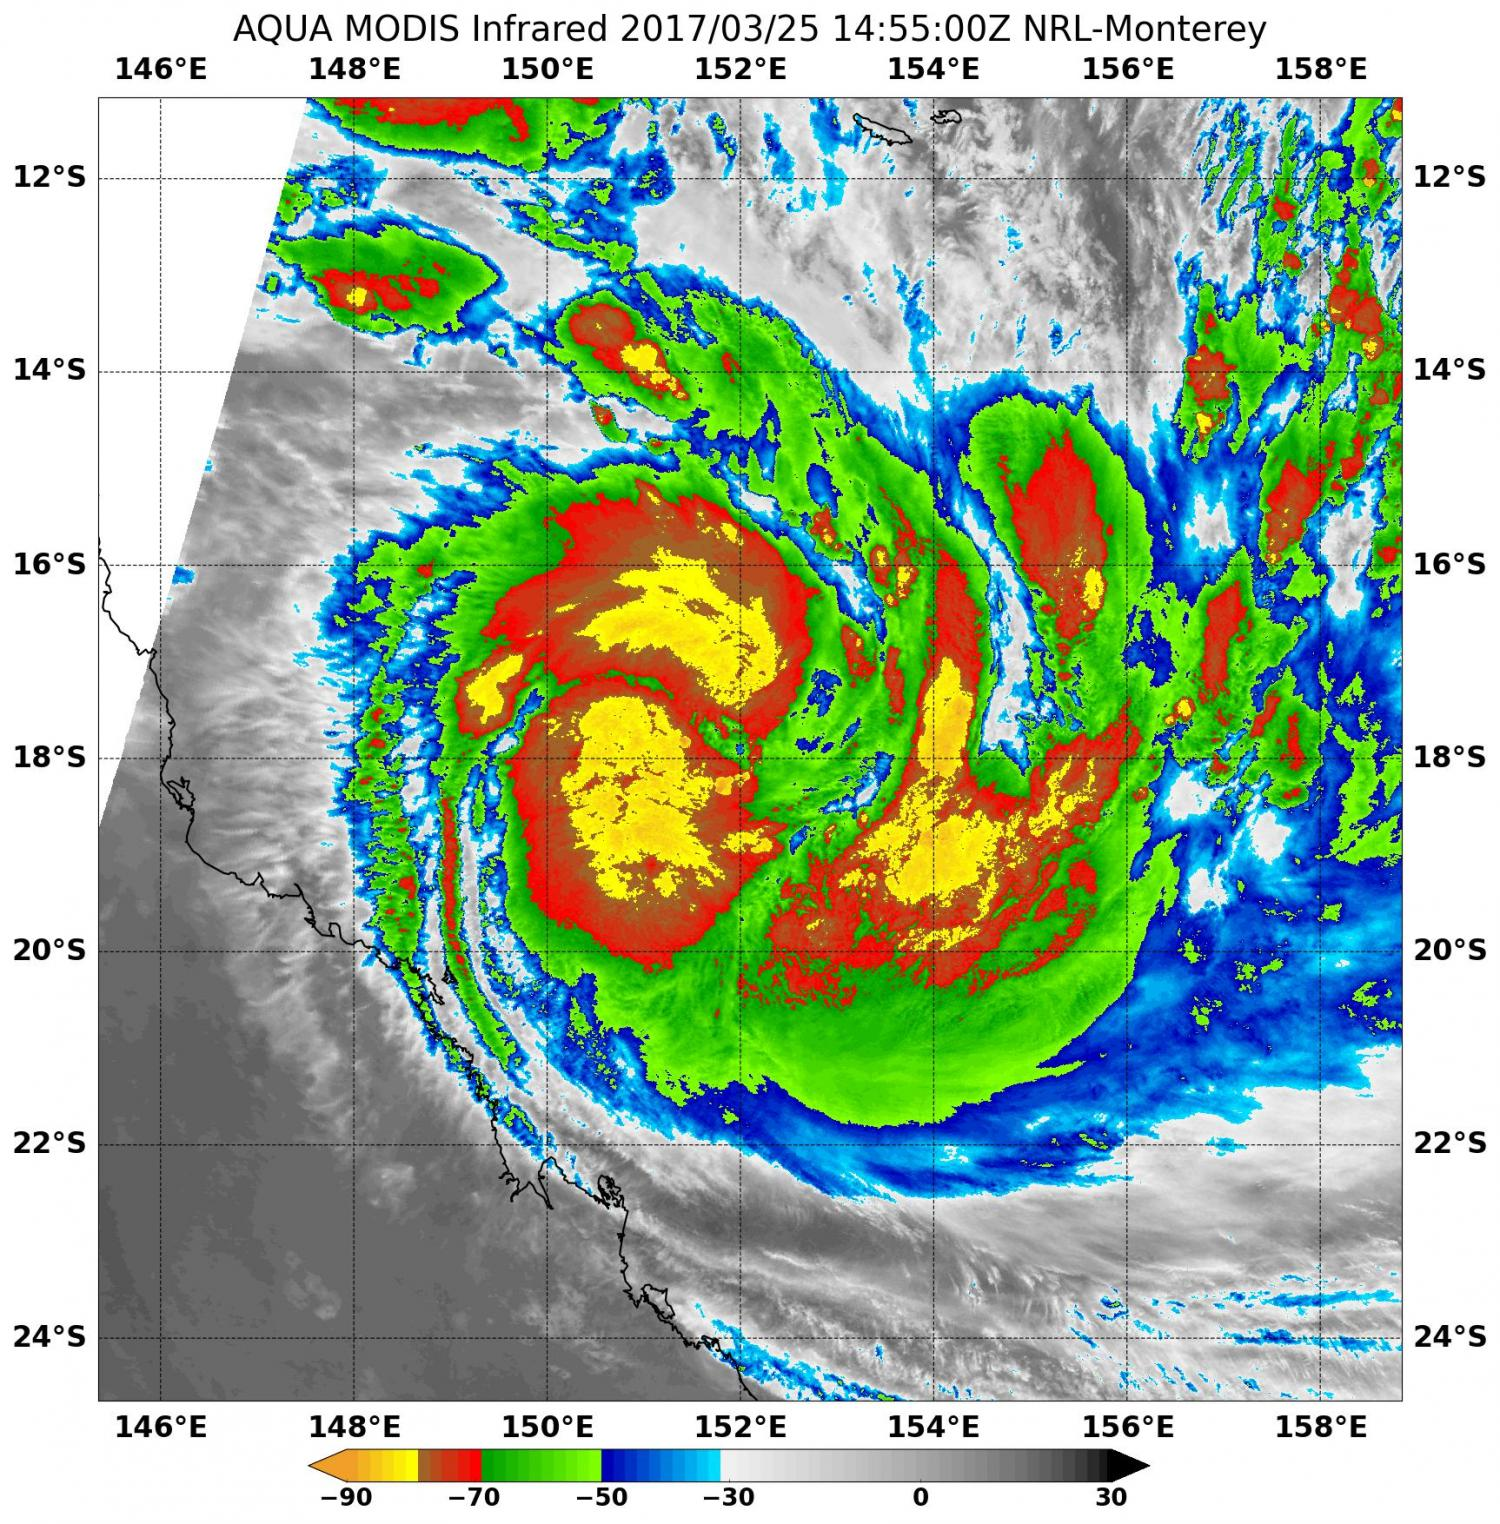 sees Tropical Cyclone Debbie form and strengthen